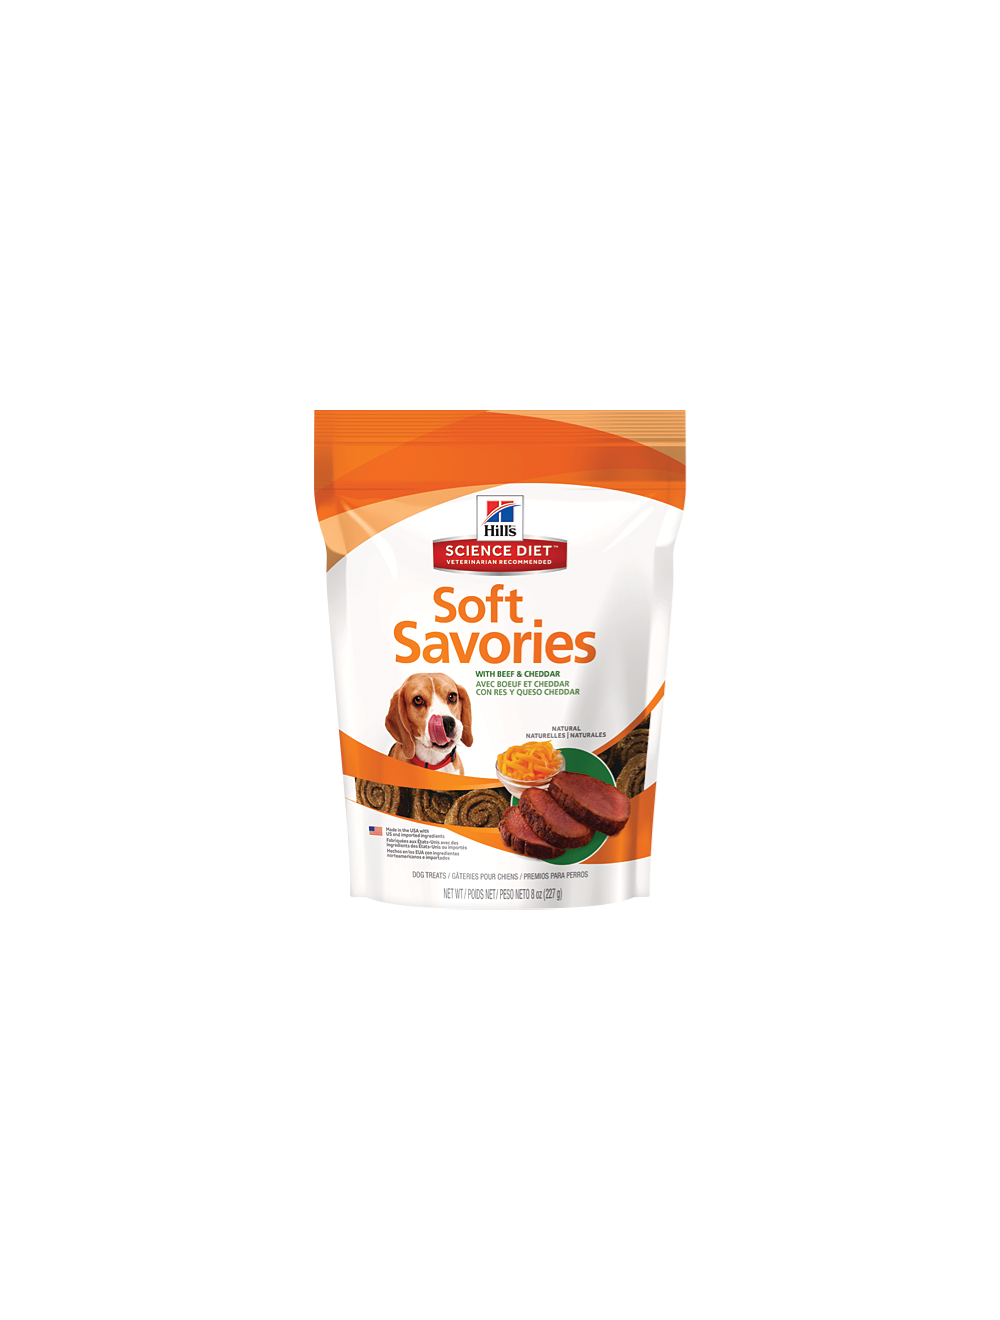 Hill's Soft Savories Galletas Carne y Queso x 227g